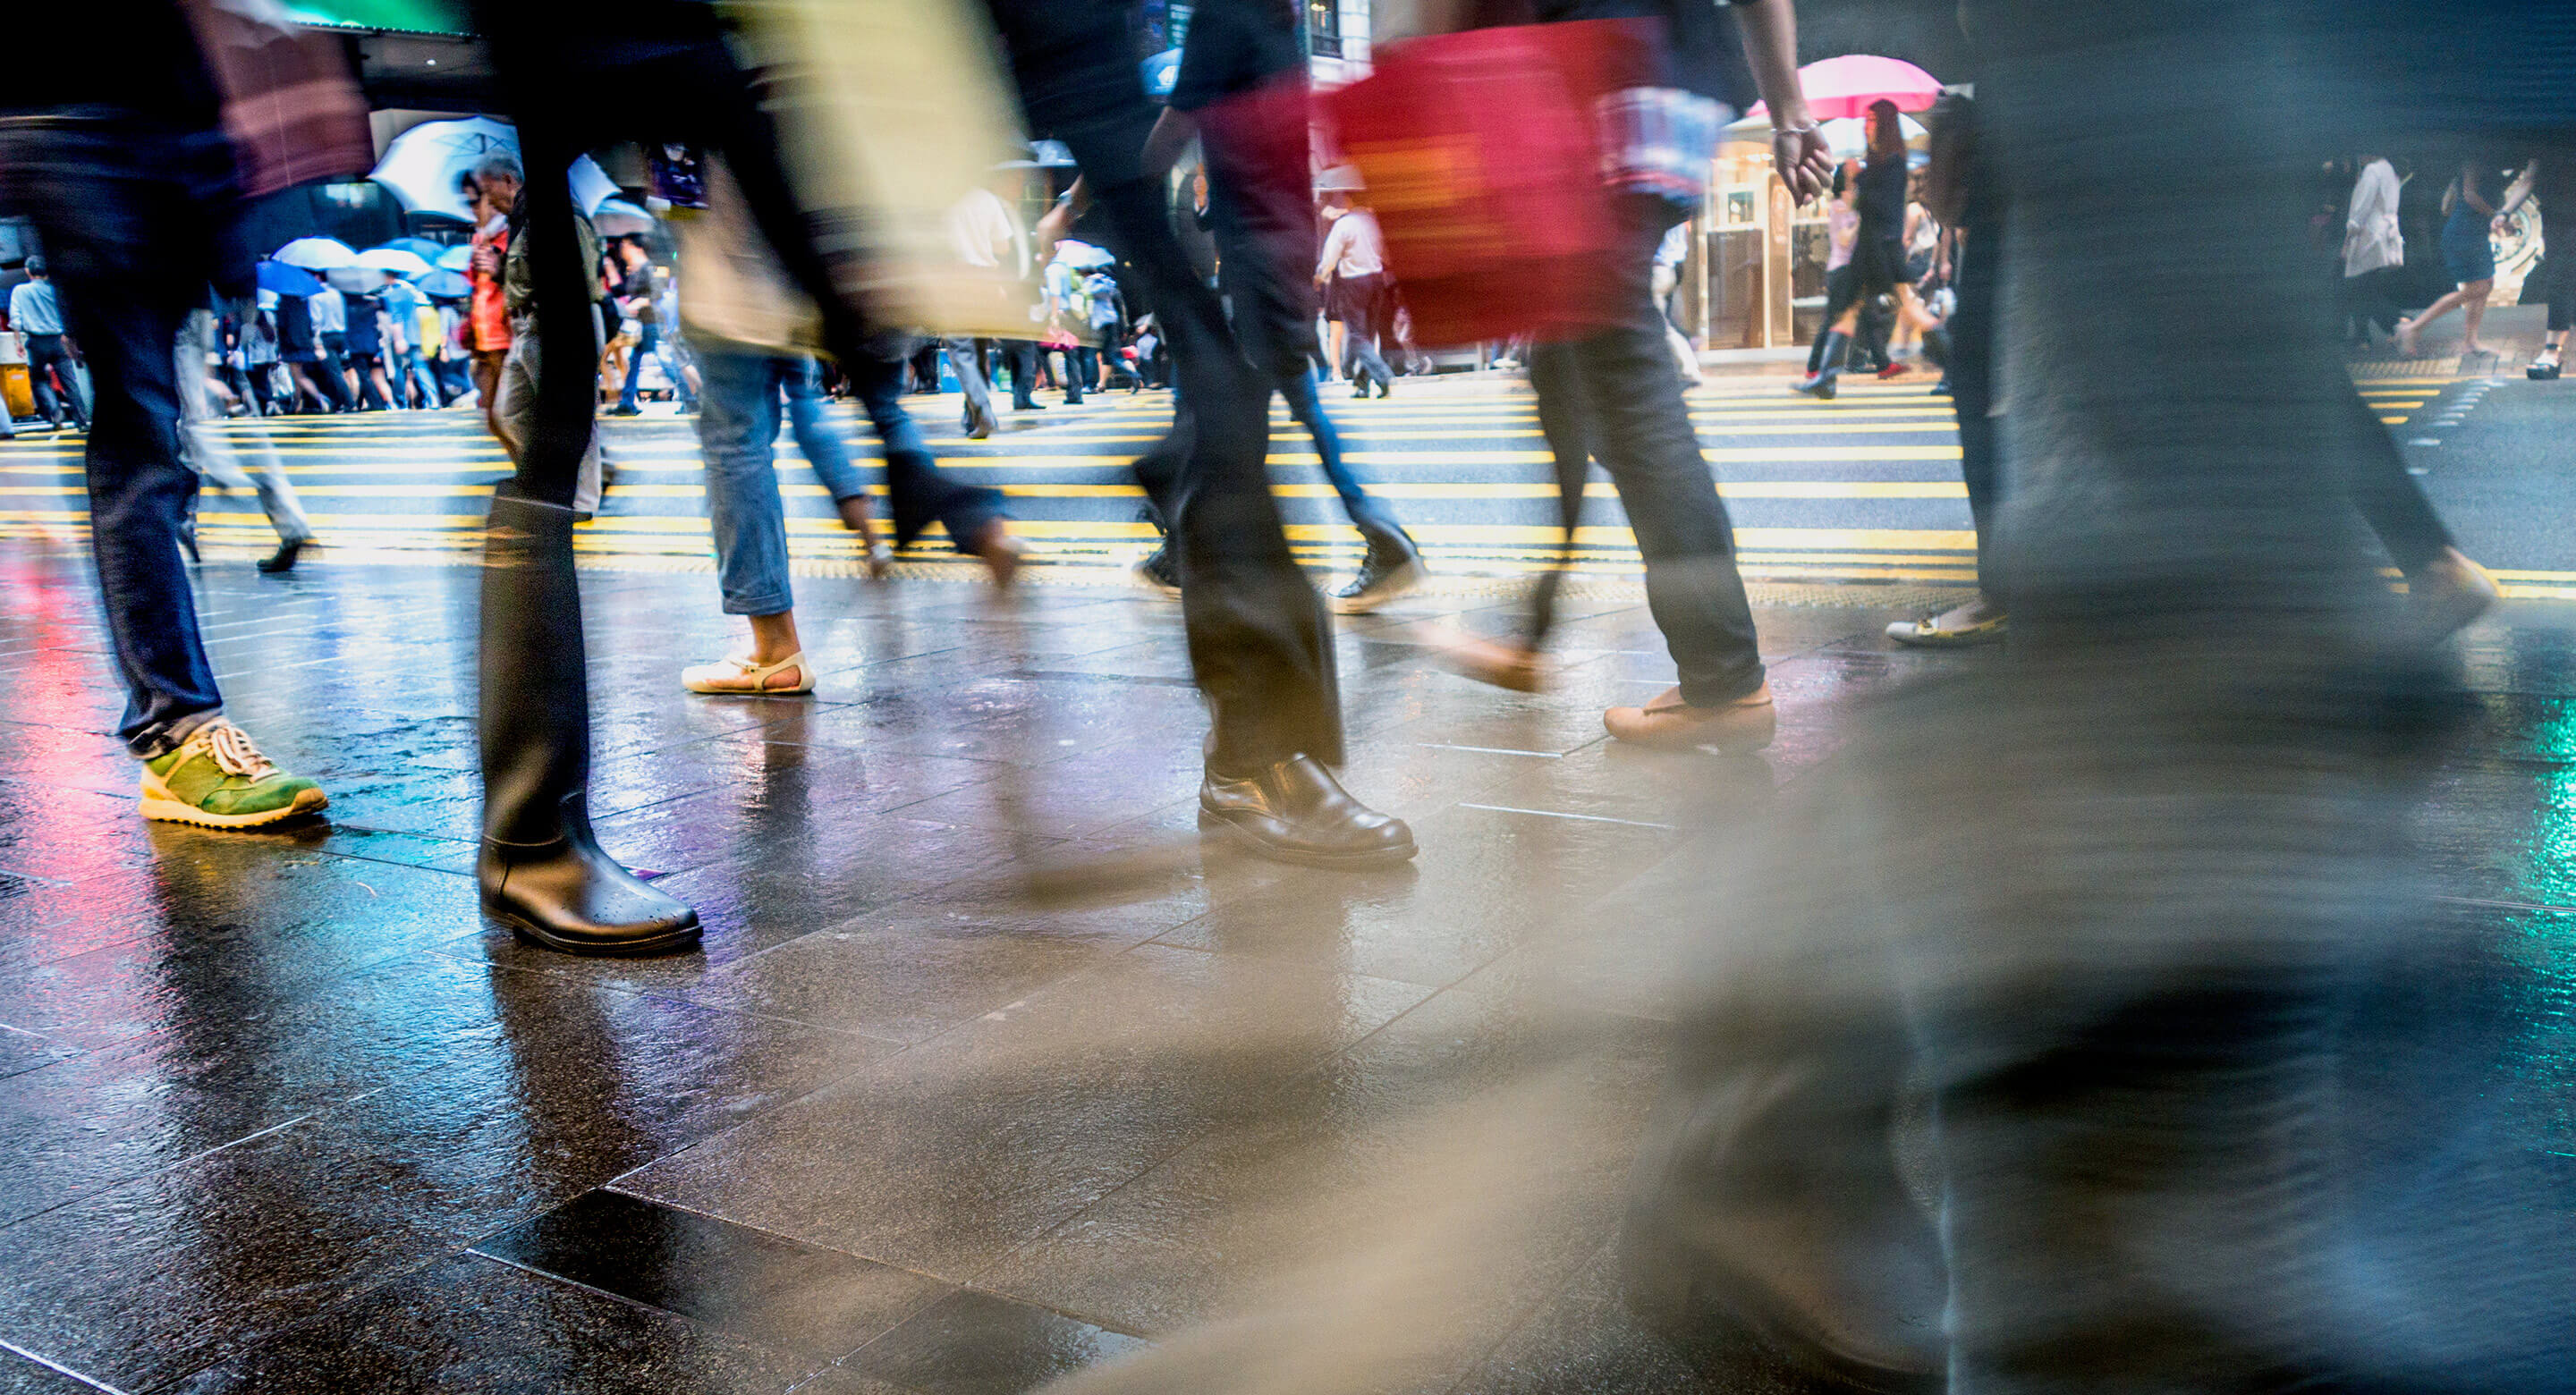 Blurred image focusing on legs and feet of people crossing a street